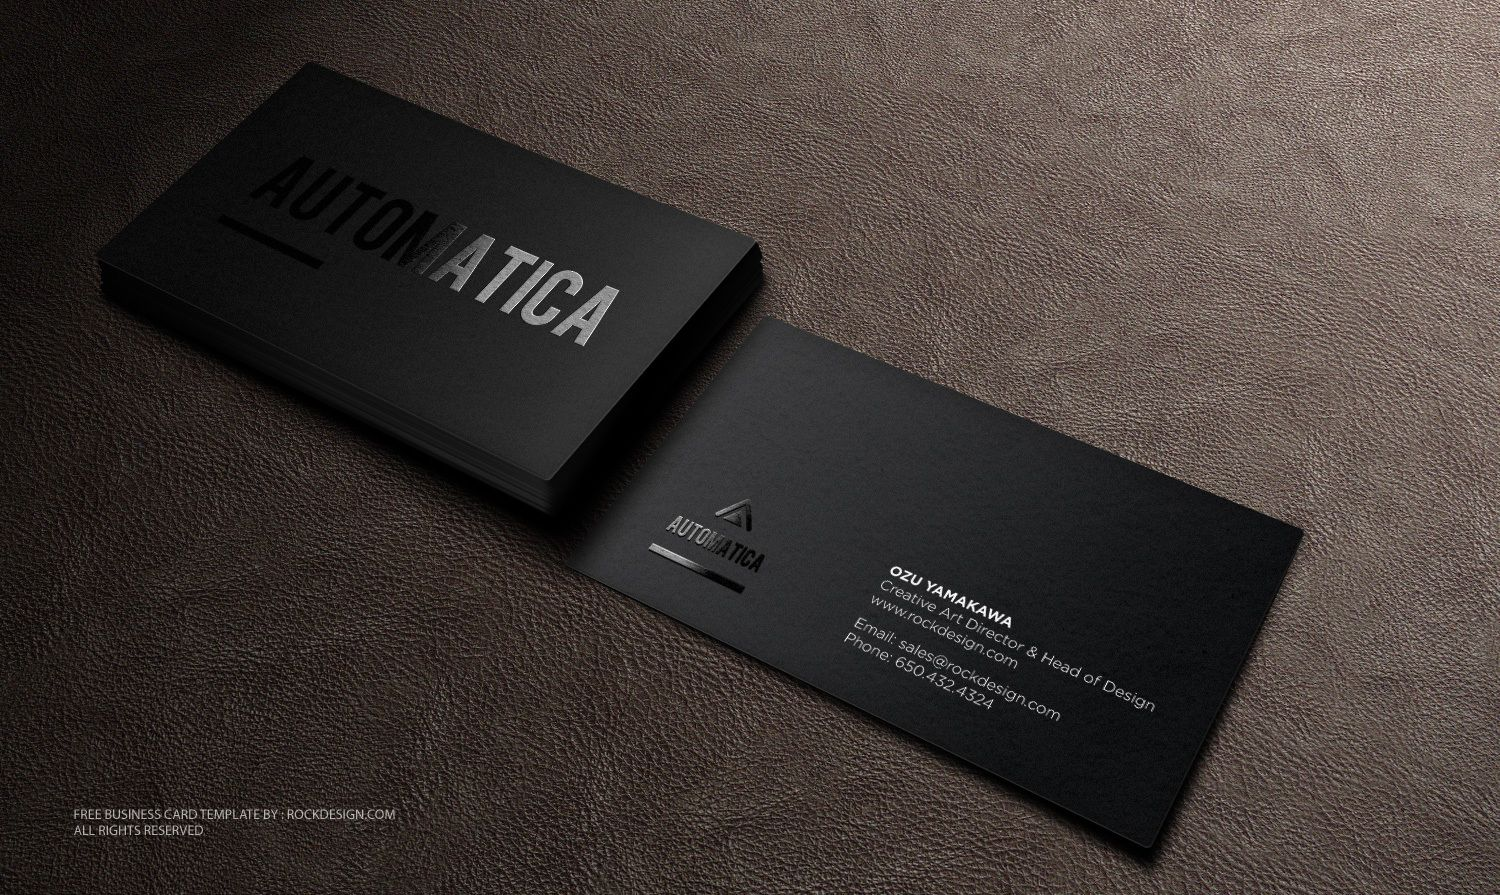 Black business card template download free design templates black business card template download free design templates accmission Images